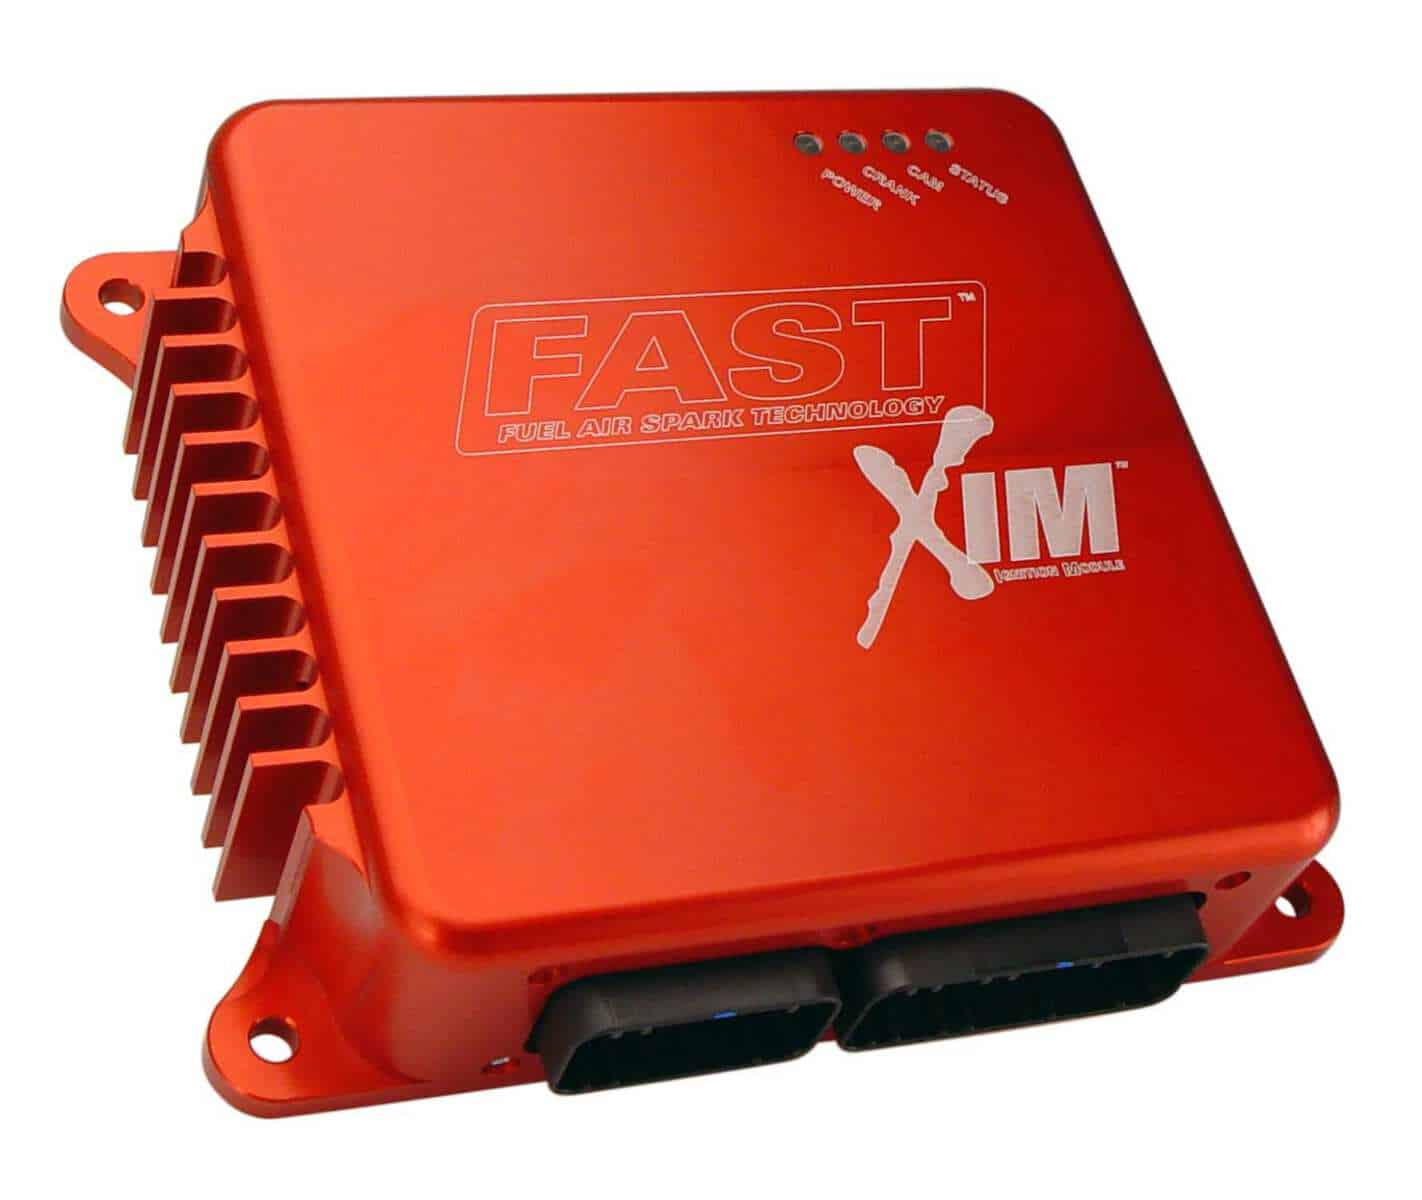 FAST The XIM controls ignition timing on coil per cylinder and waste spark  ignition